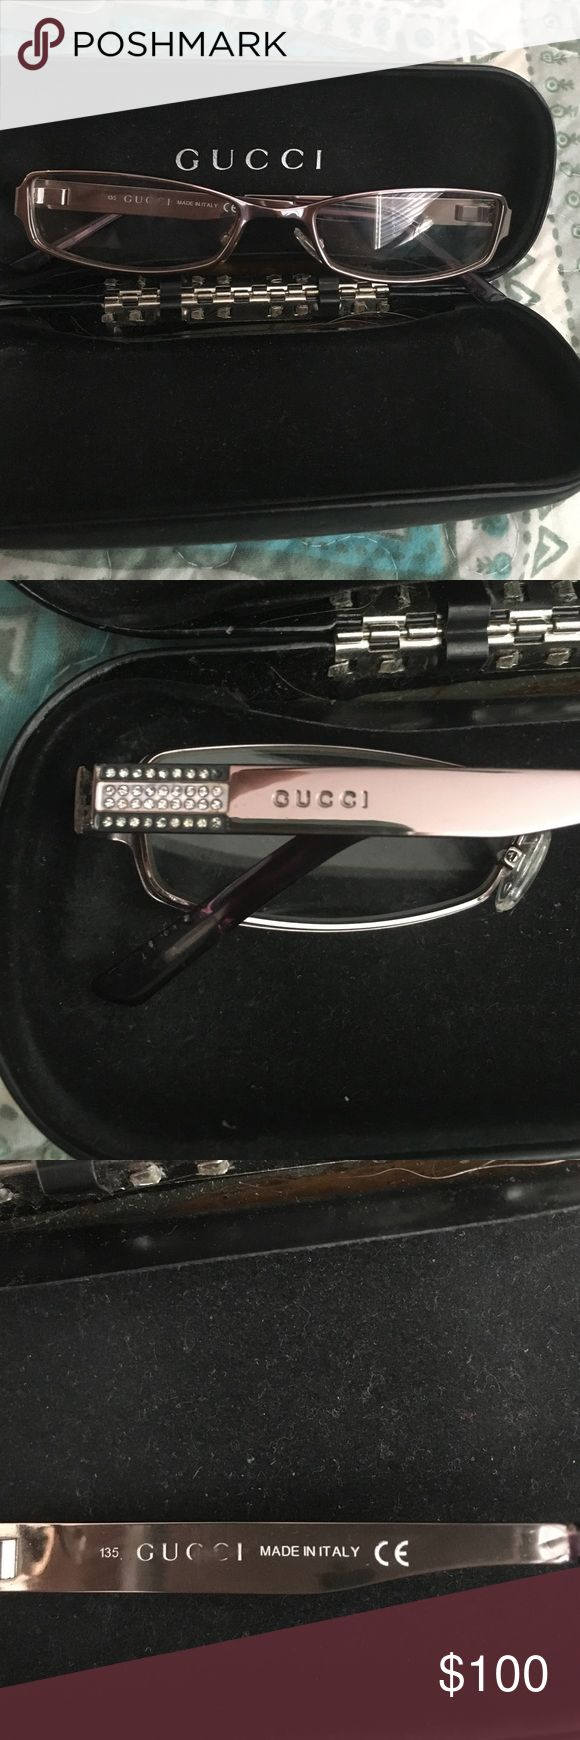 Gucci eyeglasses Gucci eyeglass frames in lavender in great condition just one small stone missing you can see it in the second picture Gucci Accessories Sunglasses